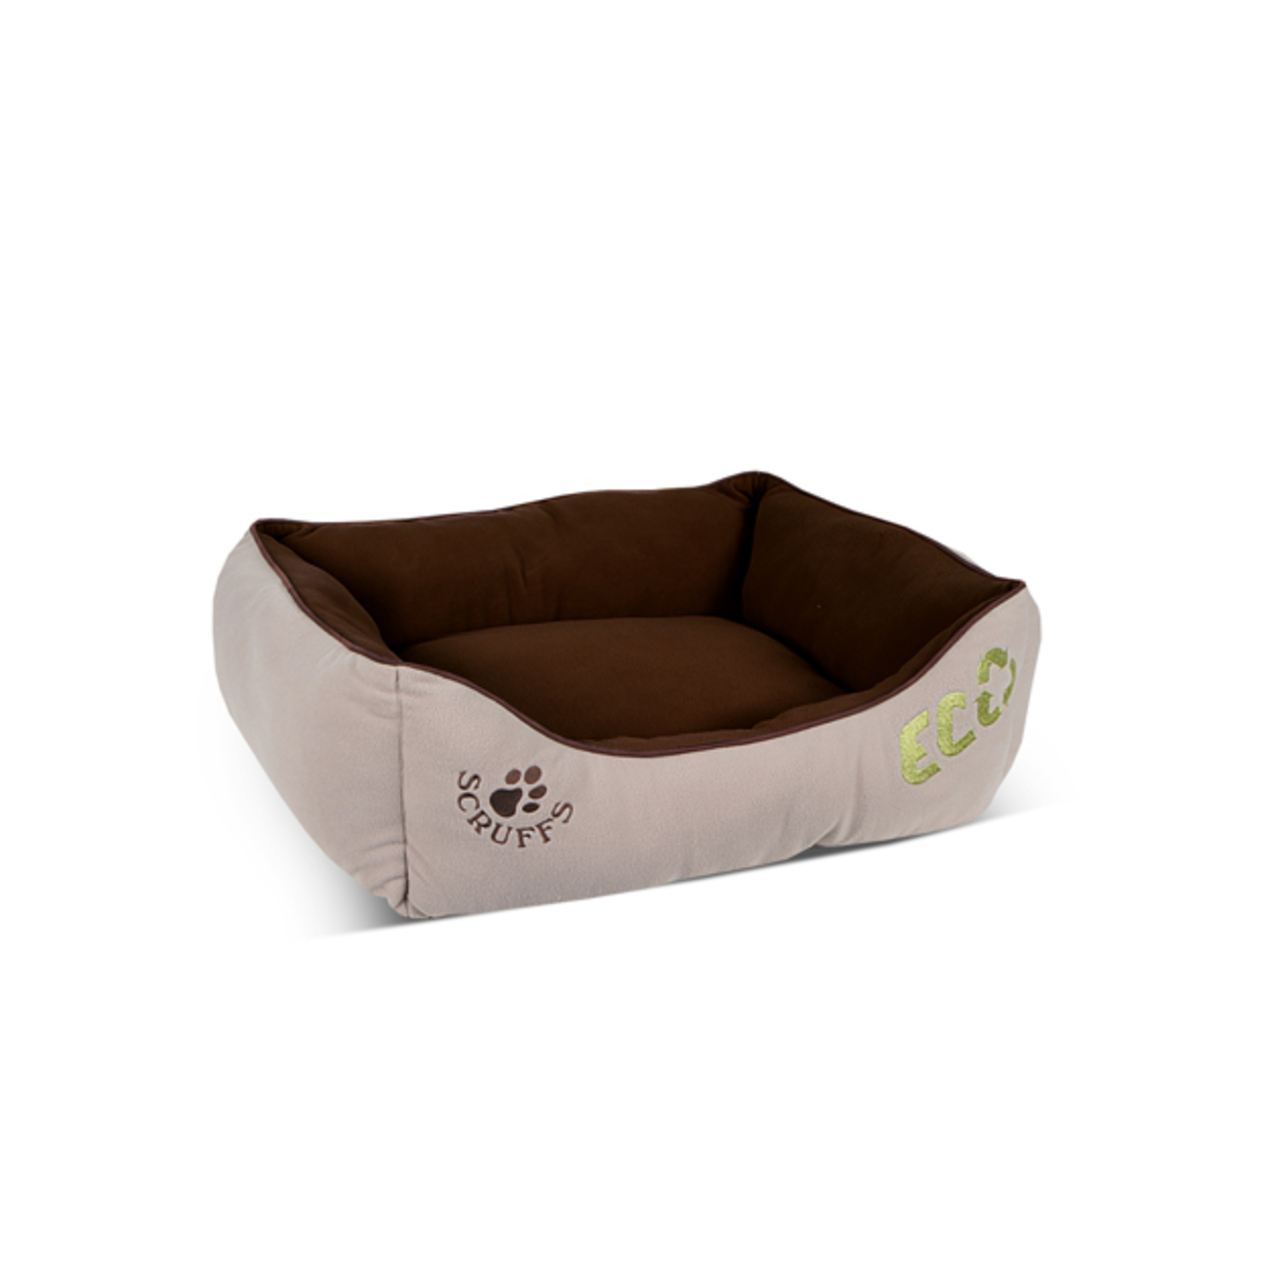 An image of Scruffs Eco Box Bed Small